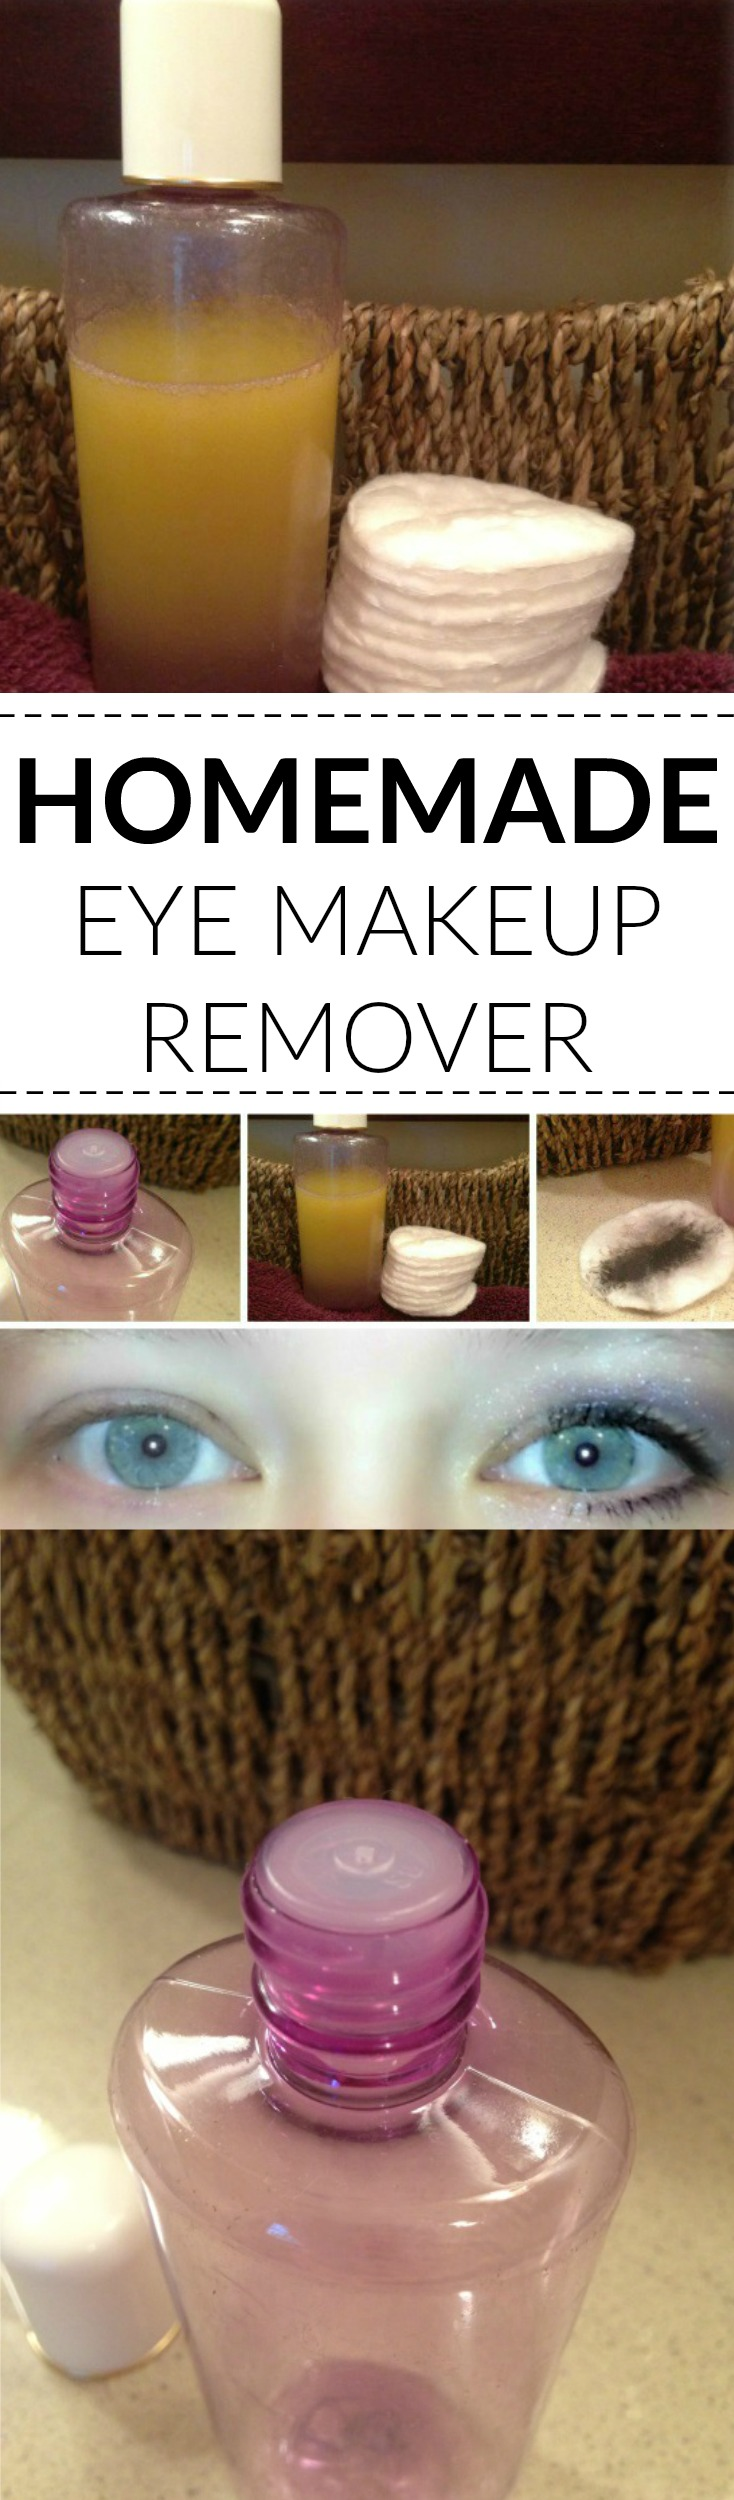 Homemade eye makeup remover recipe. This DIY recipe saves so much money!